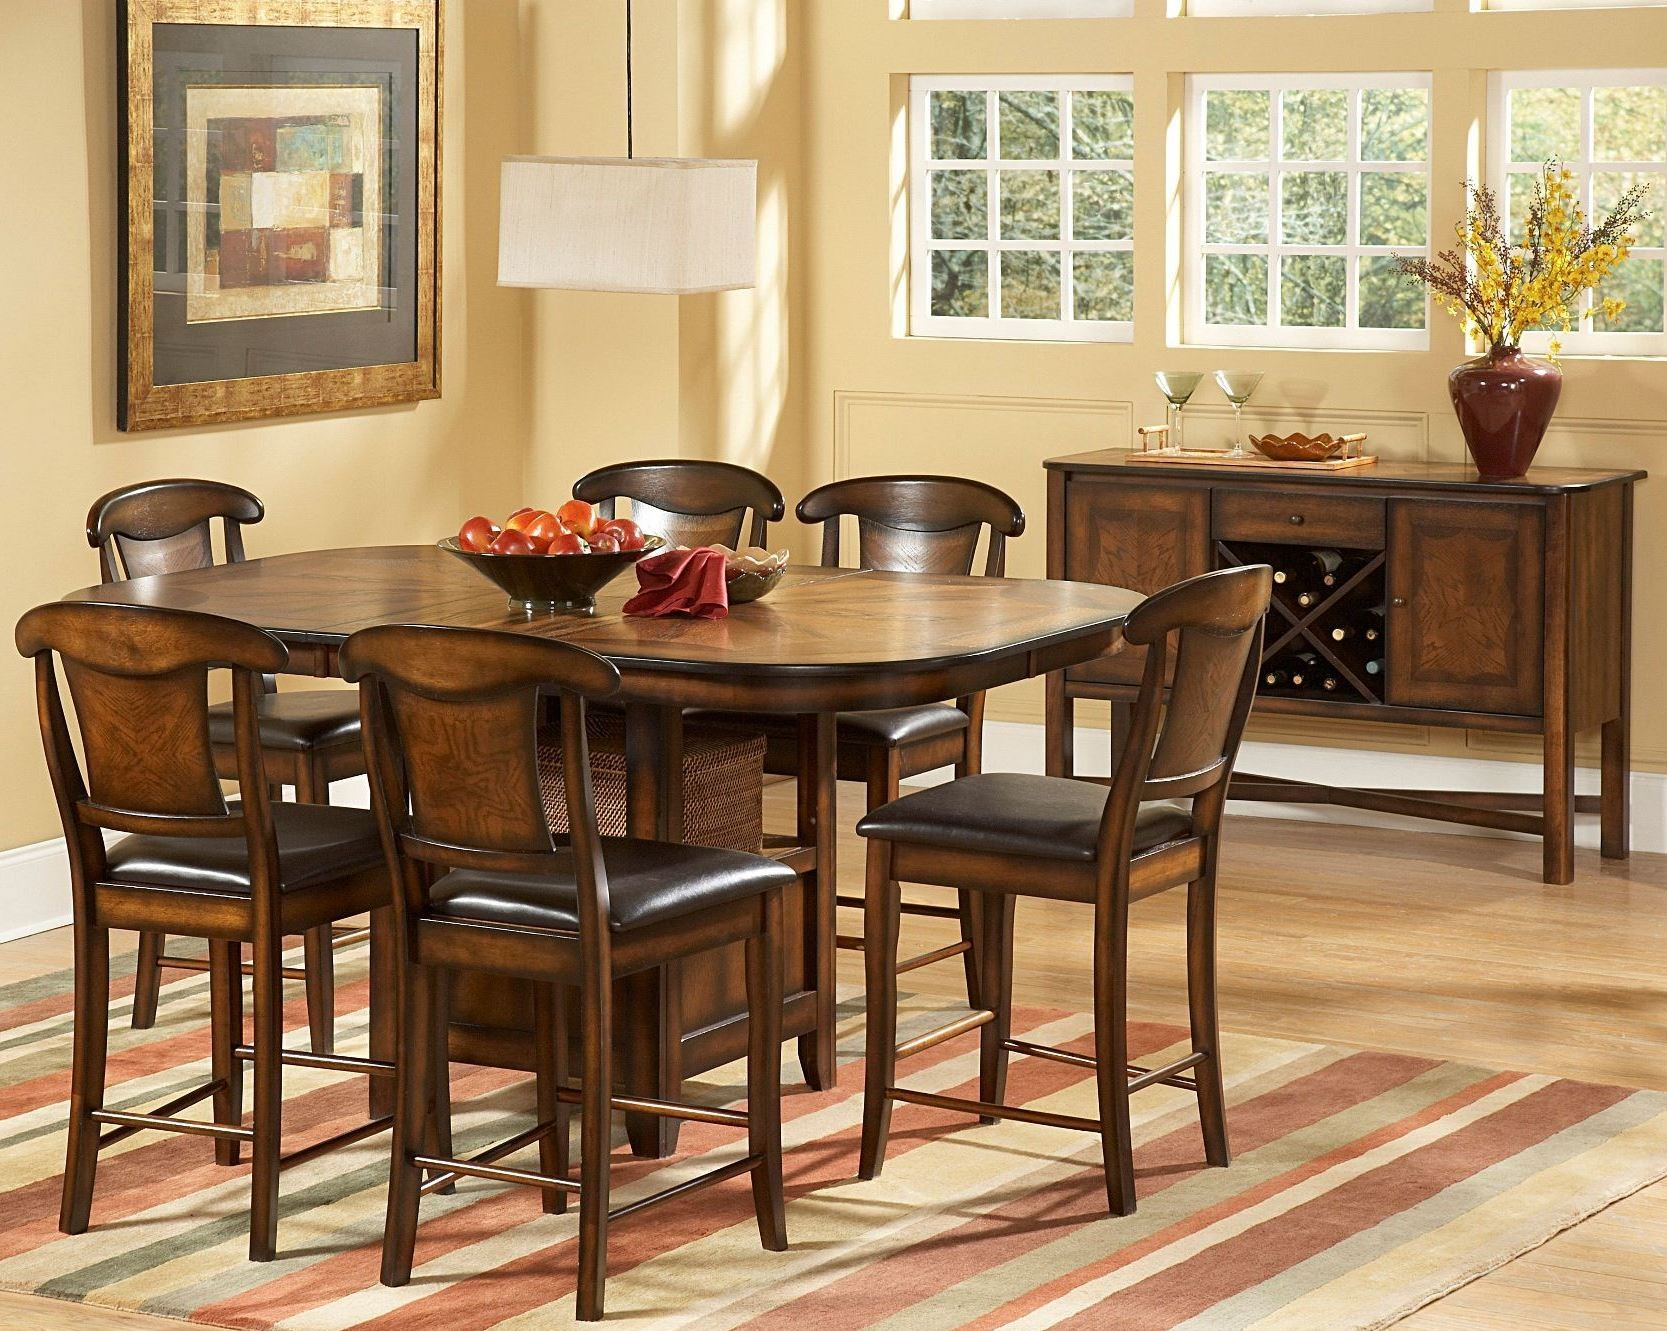 Westwood Counter Height Extendable Dining Room Set from ...